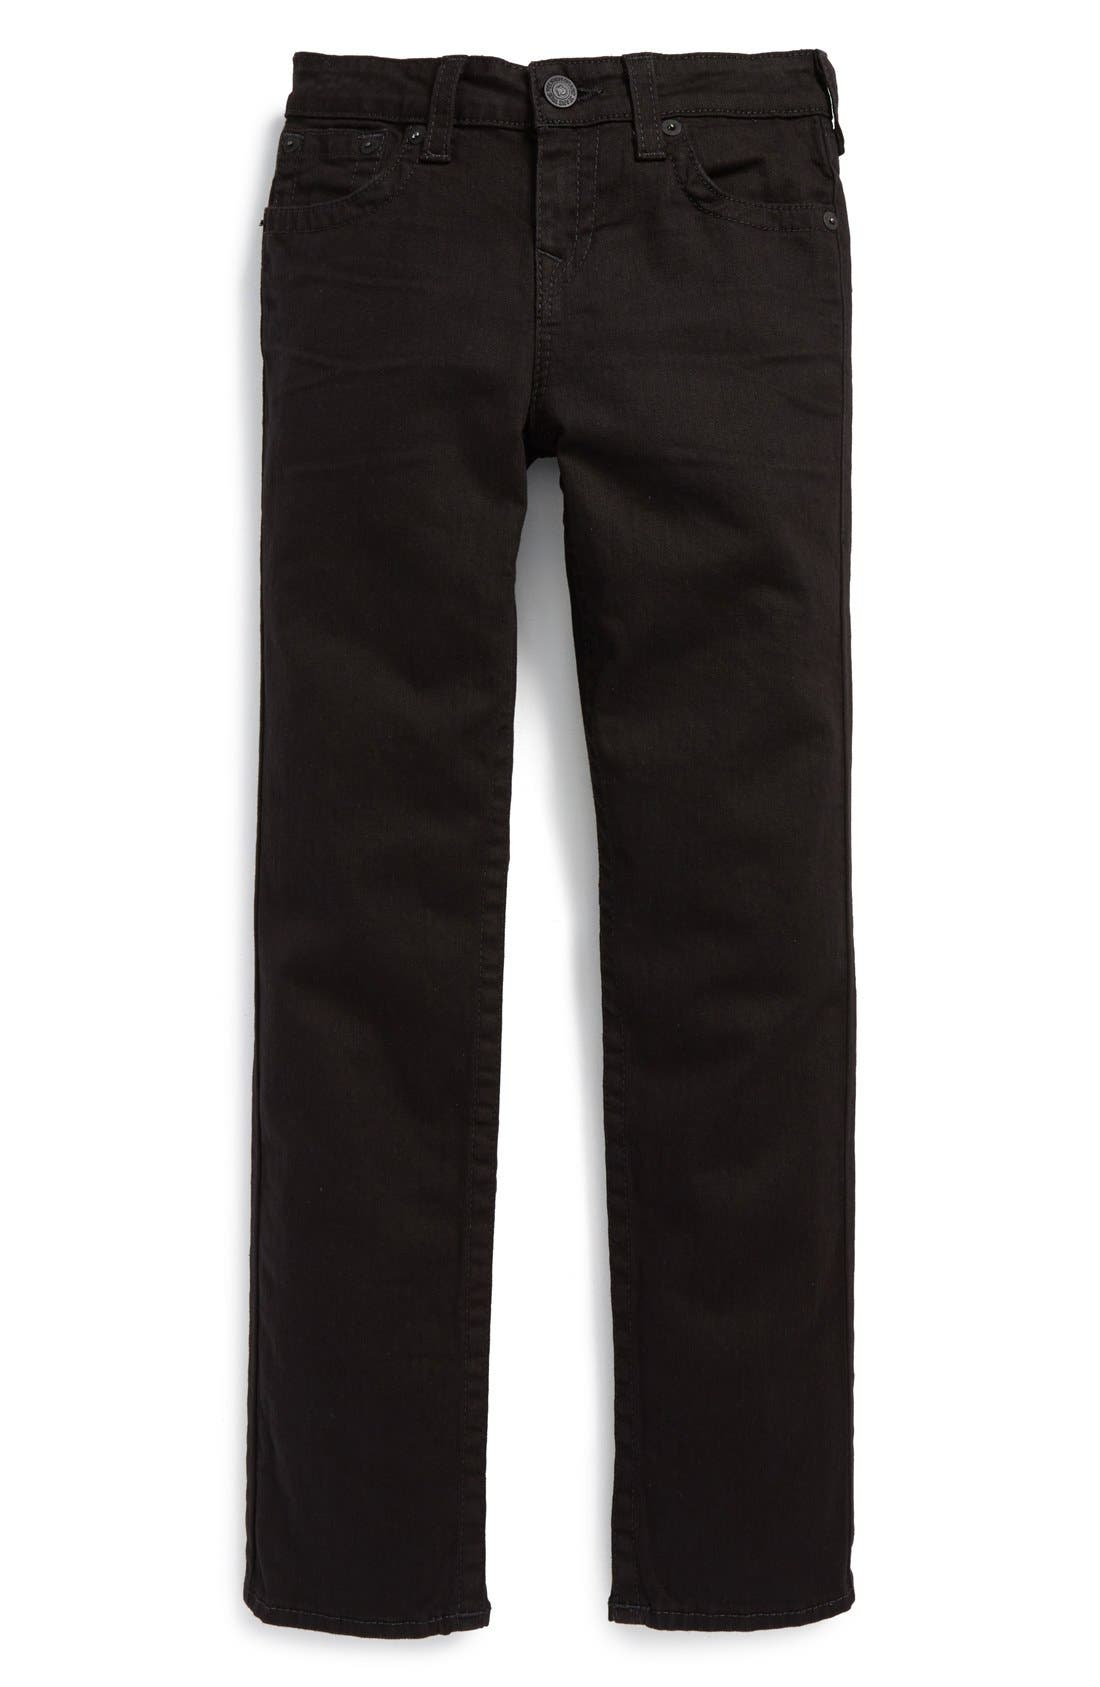 True Religion Brand Jeans 'Geno' Relaxed Slim Fit Jeans (Big Boys)